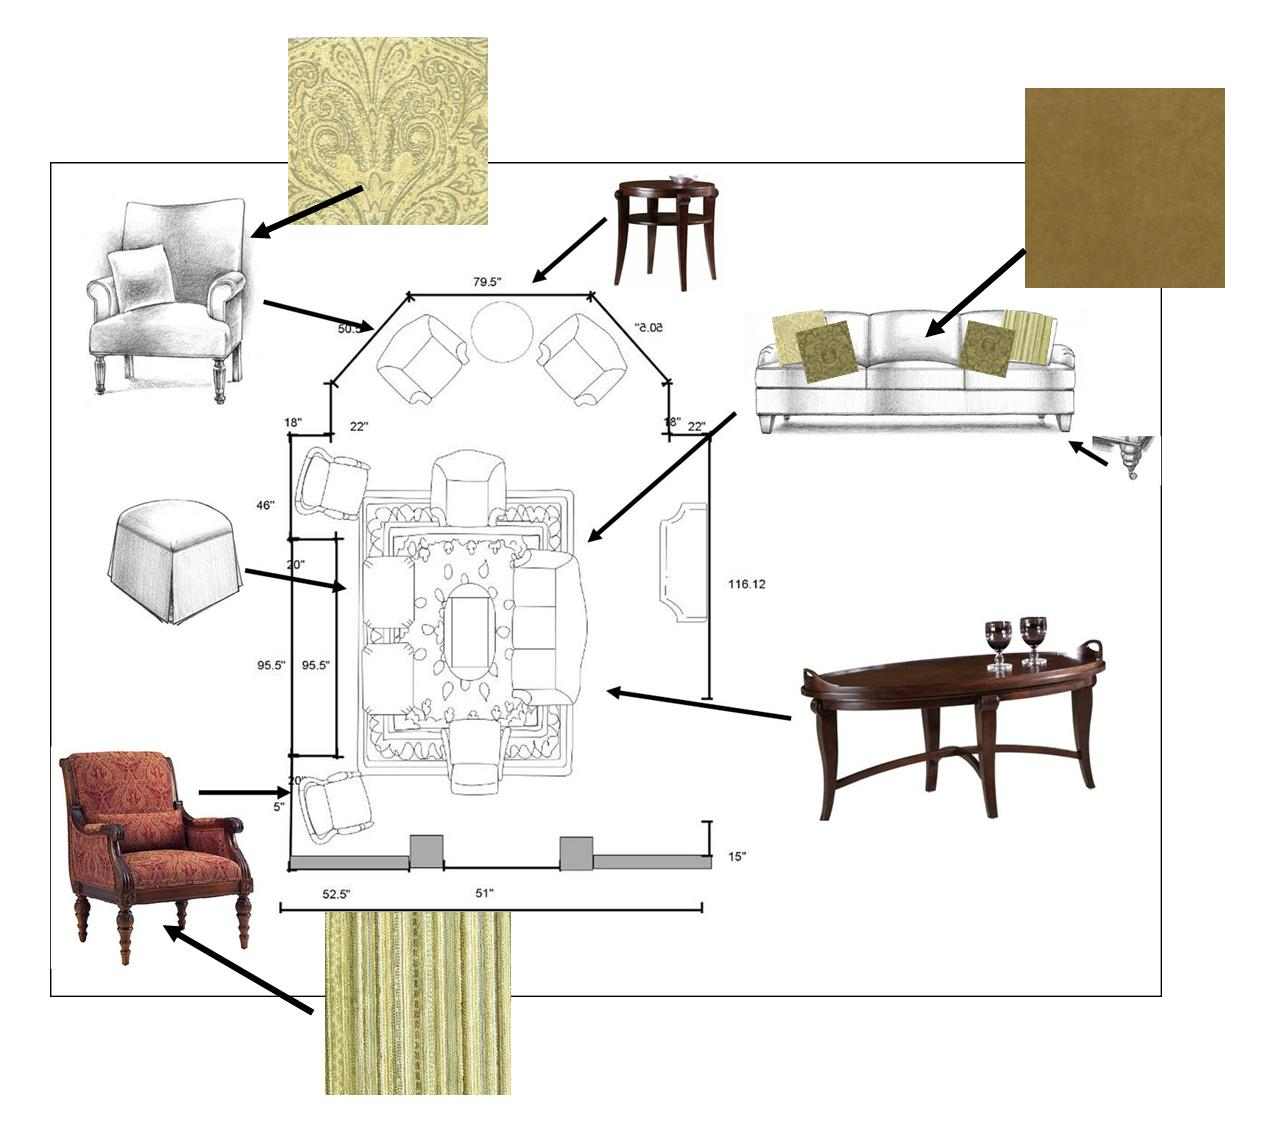 Woodwork Chinese Furniture Plans Pdf Plans